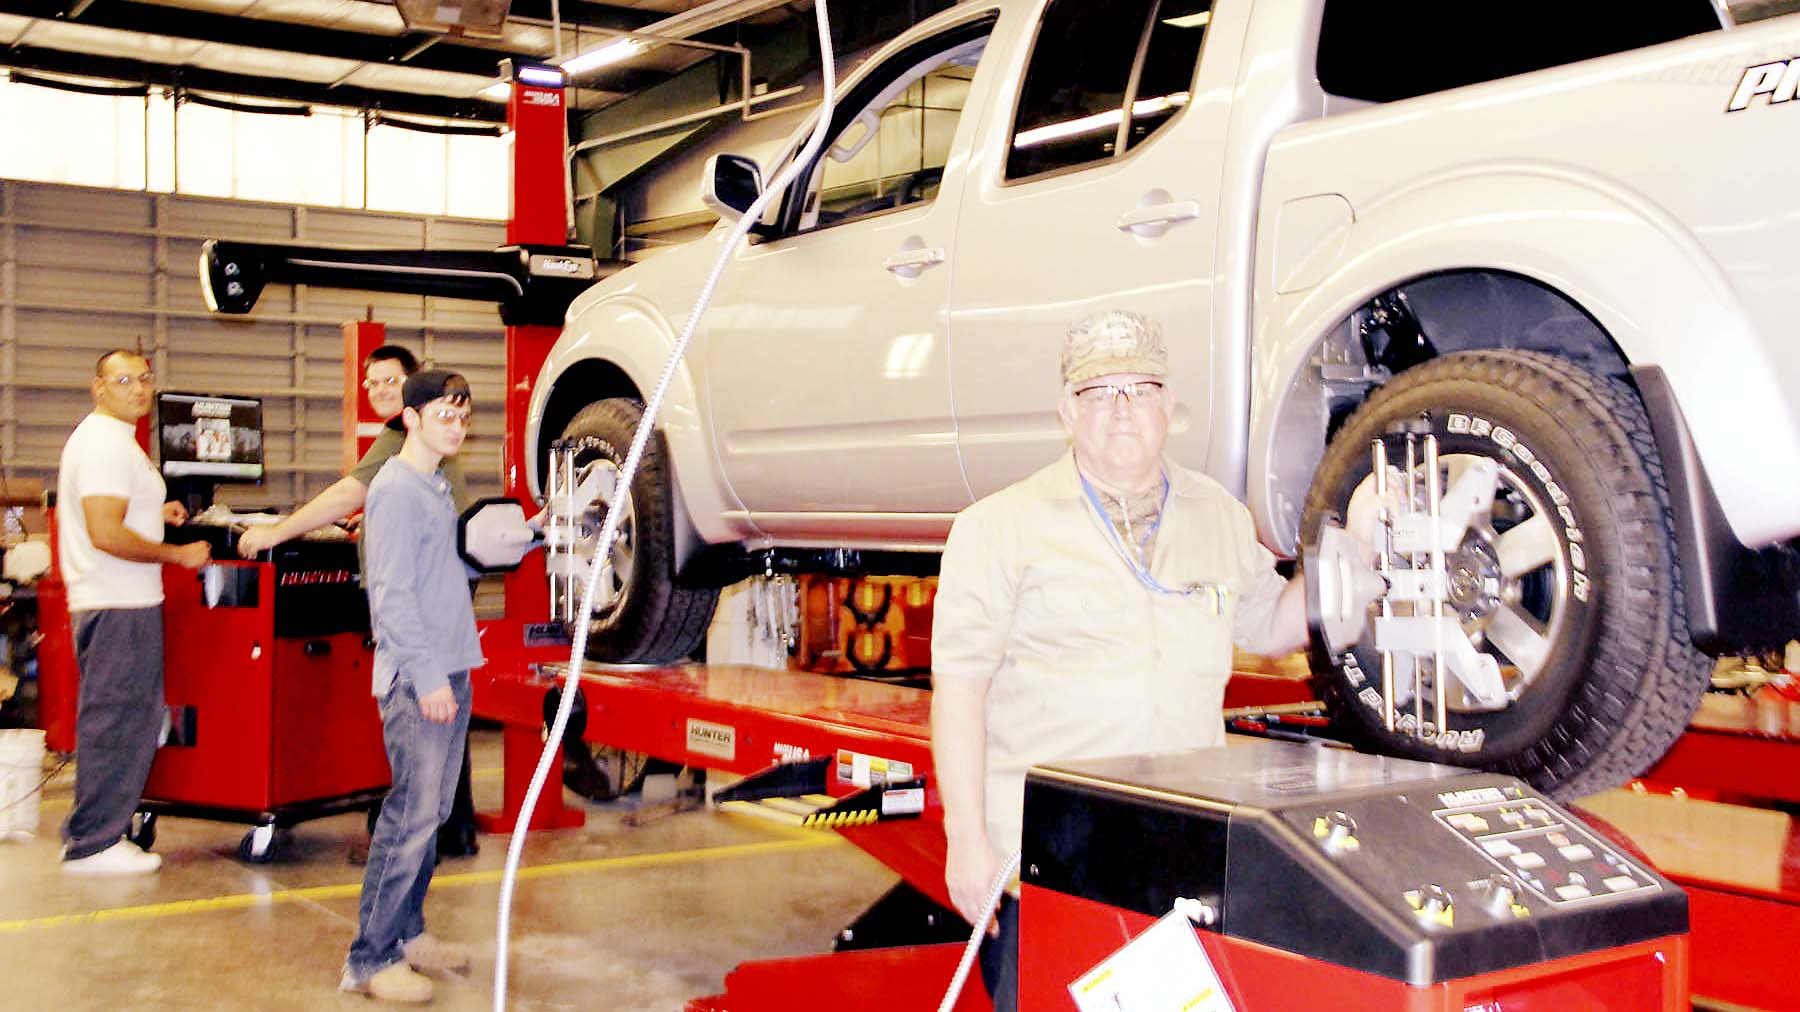 PHOTO SUBMITTED / Automotive technology students Paul Rejon (from left) of Brookhaven, Michael Butler of Bogue Chitto, Nicholas Devine and Wesley Bearden, both of Brookhaven, work with some of the new equipment in the automotive technology program at Copiah-Lincoln Community College.